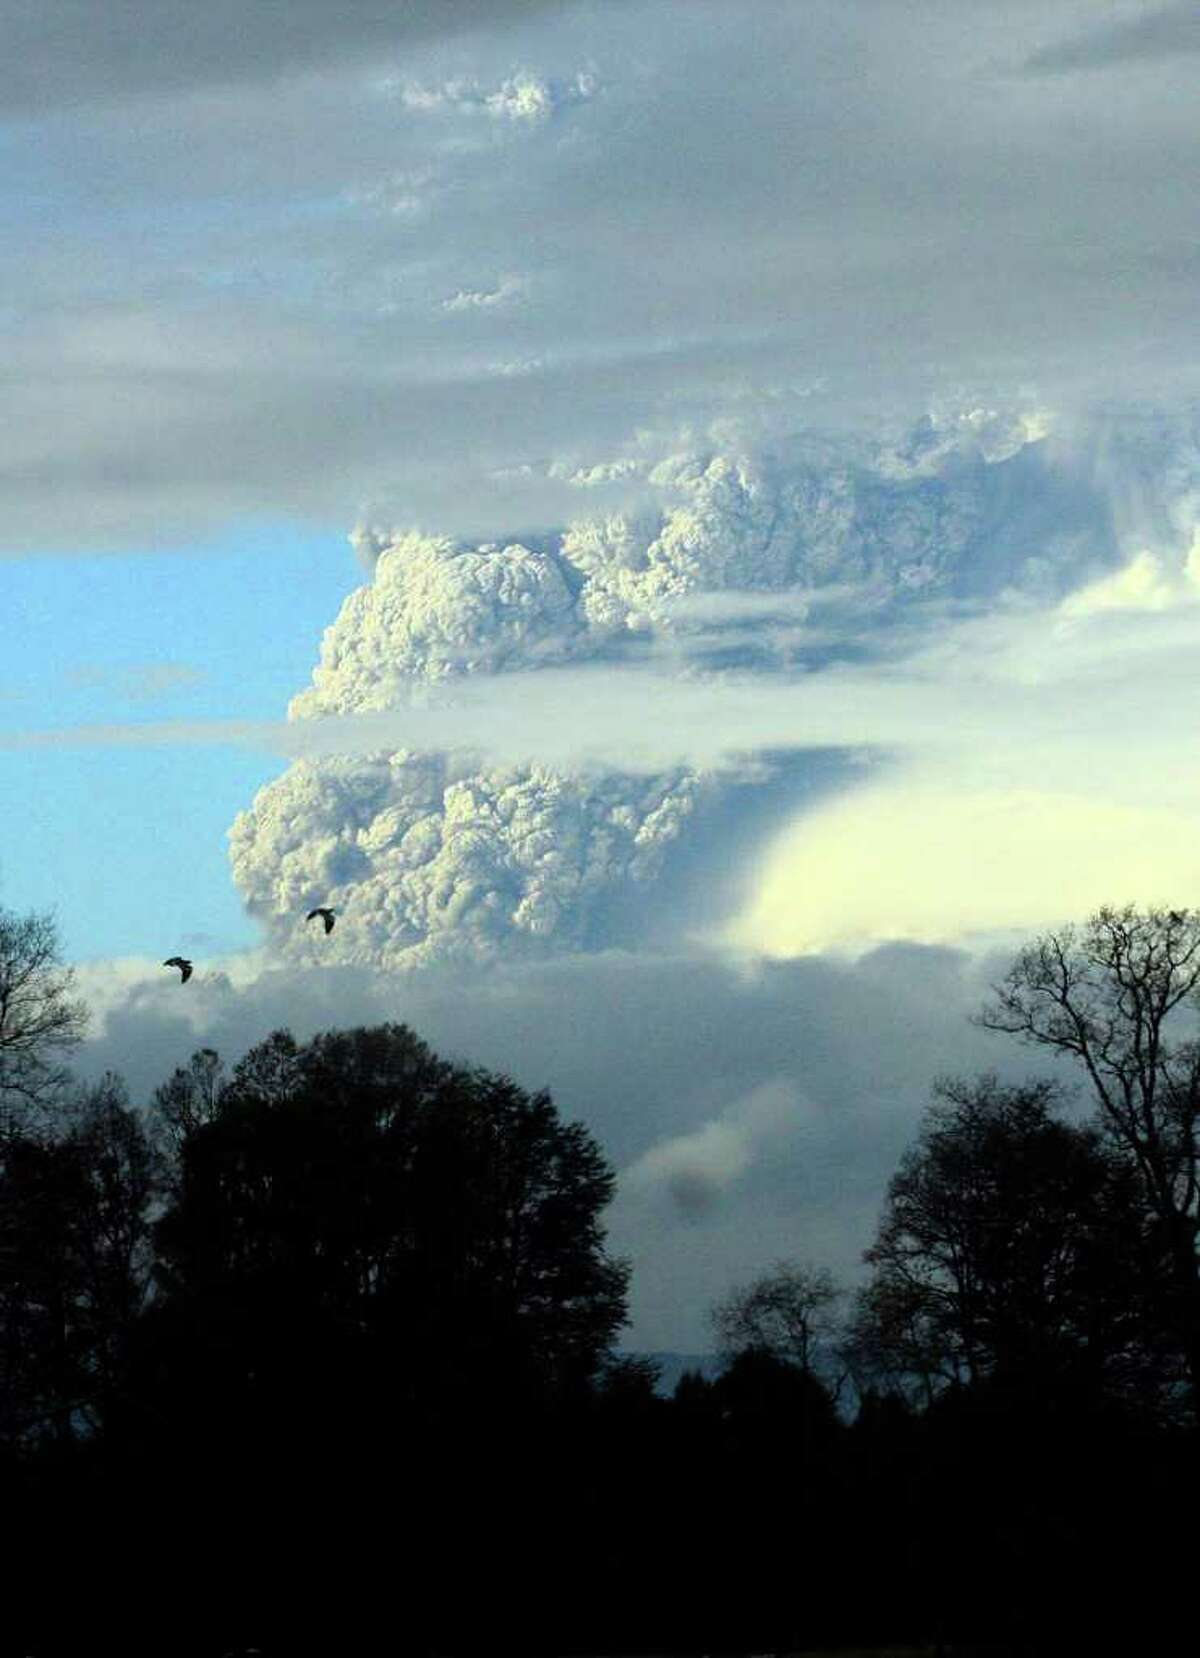 A column of smoke and ashes spews out from the Puyehue volcano, some 1,100 kilometers south of Santiago, Chile, Saturday, June 4, 2011. Authorities have evacuated about 600 people living near the volcano. There have been no reports of injuries.